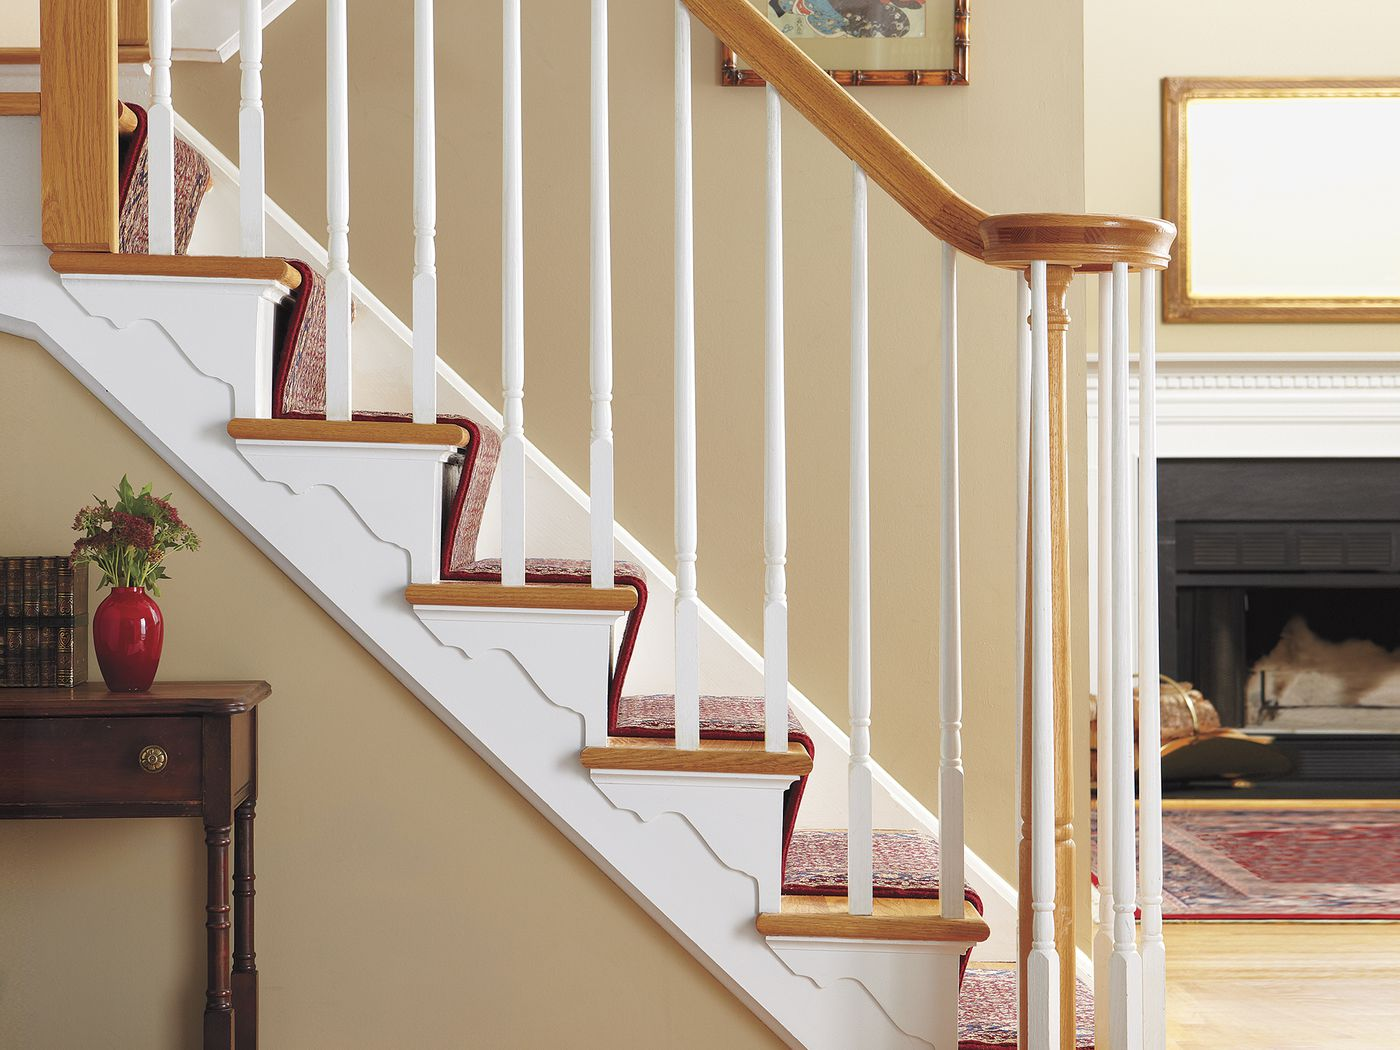 21 Home Improvement Ideas On Budget This Old House